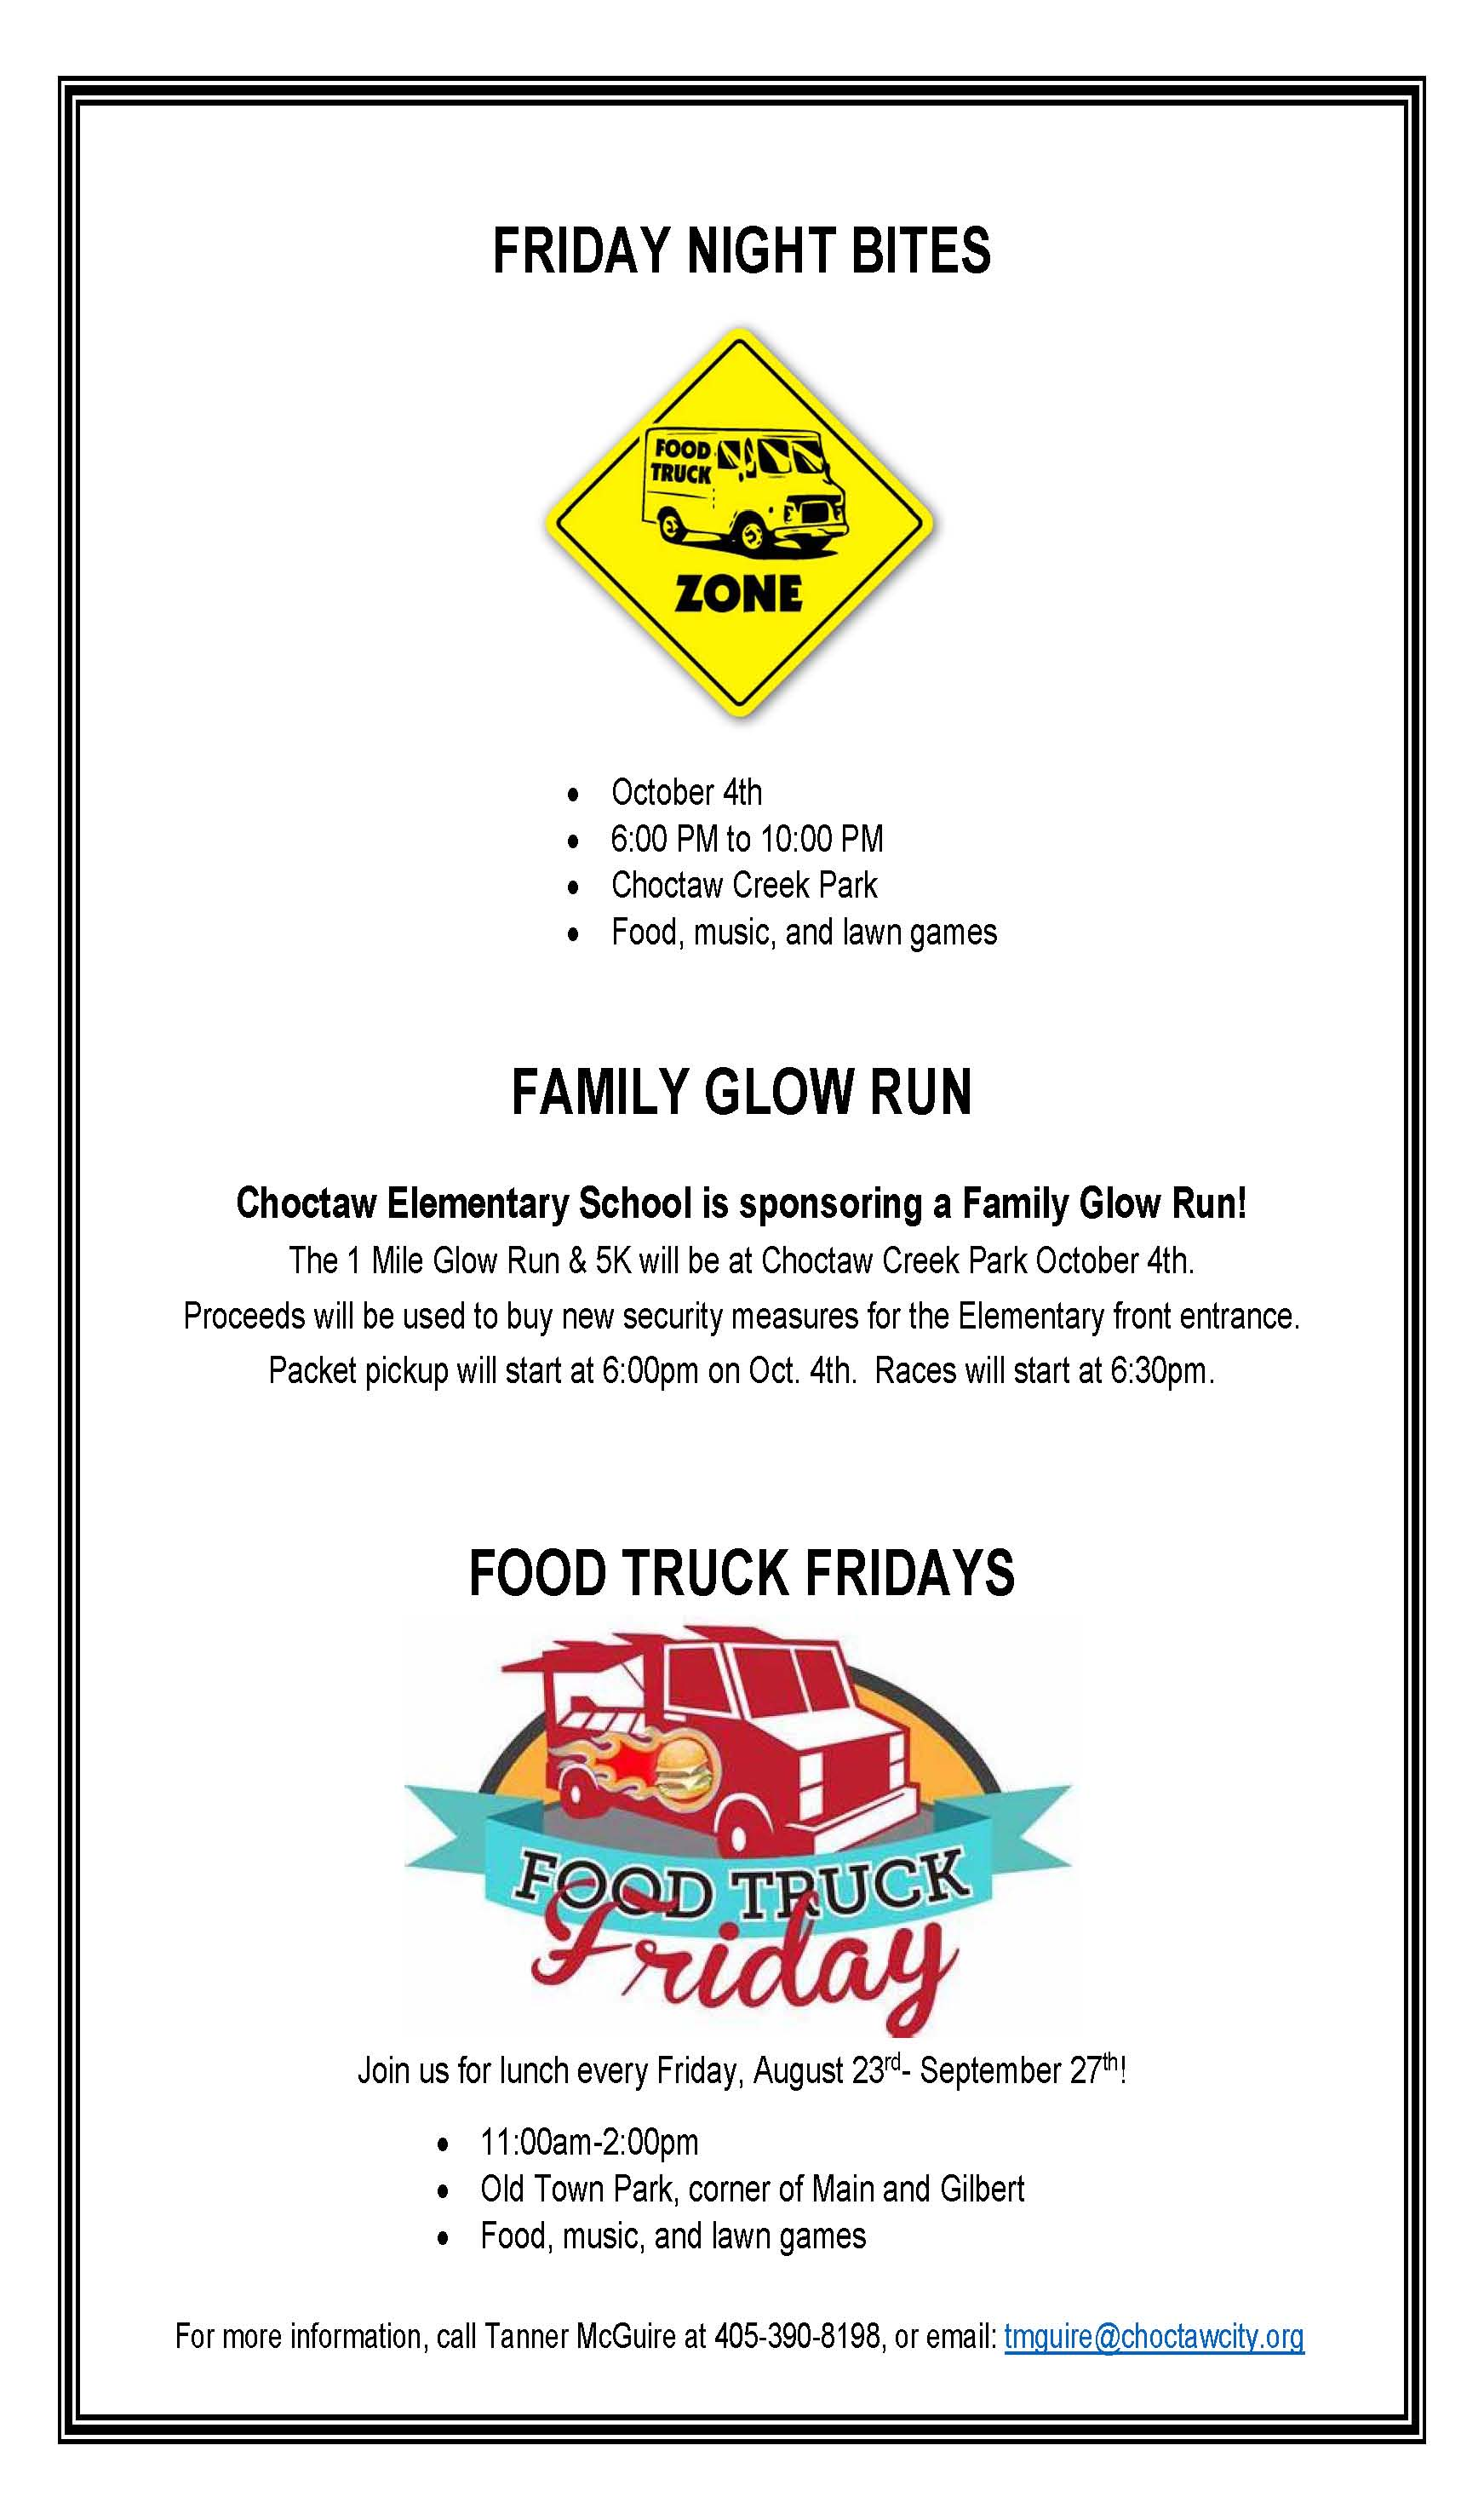 FridayNightBites-CEGlowRun-FoodTruckFridays combo flyer Opens in new window